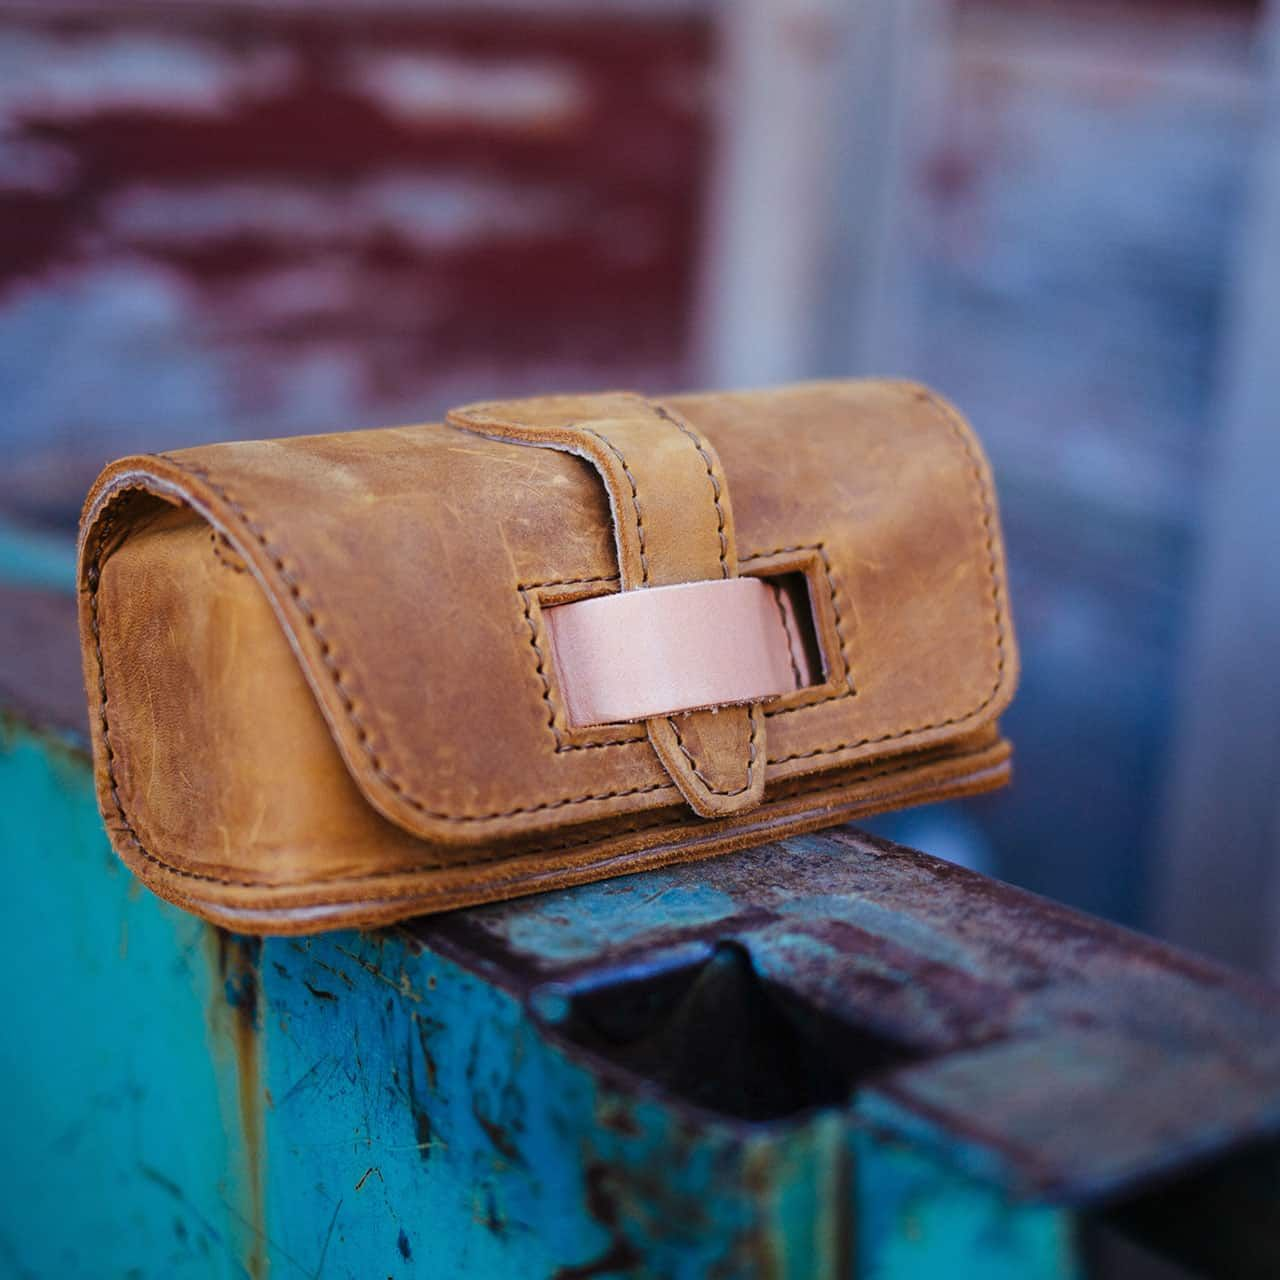 Hard Sunglass Case - Tobacco - Closed Against a Colorful Backdrop